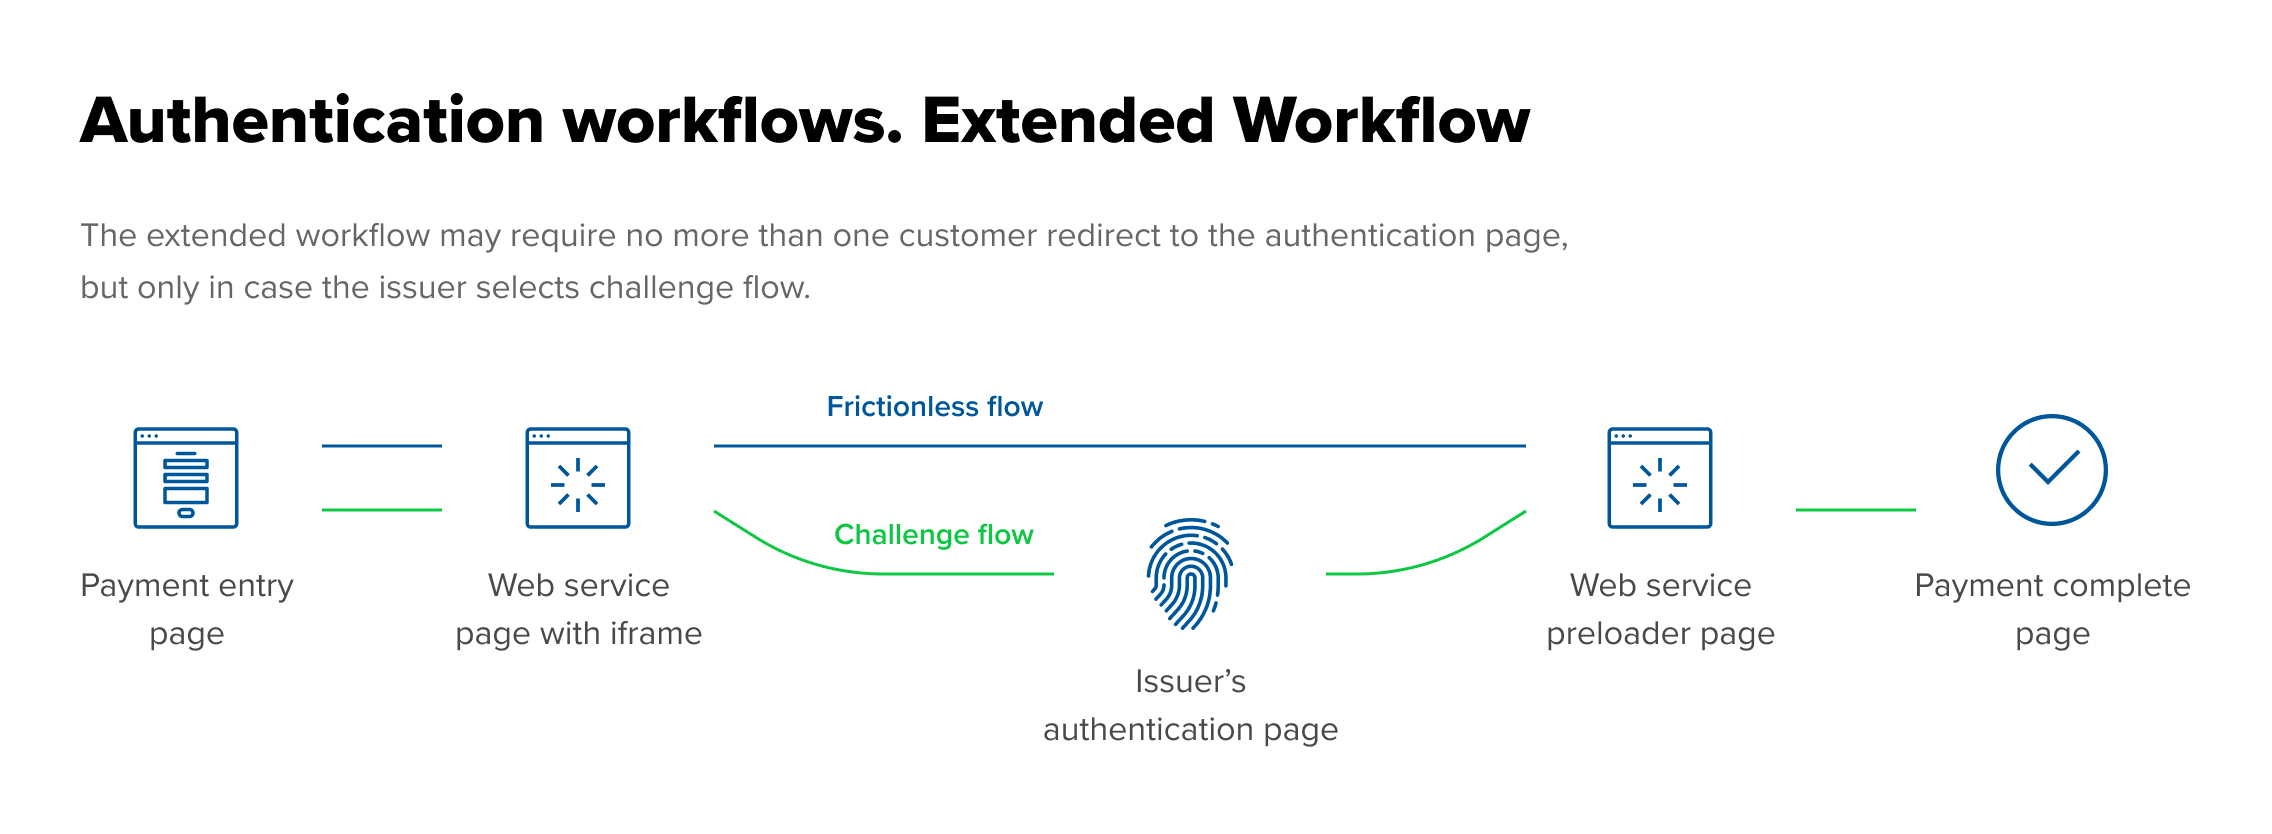 Authentication workflows. extended workflow